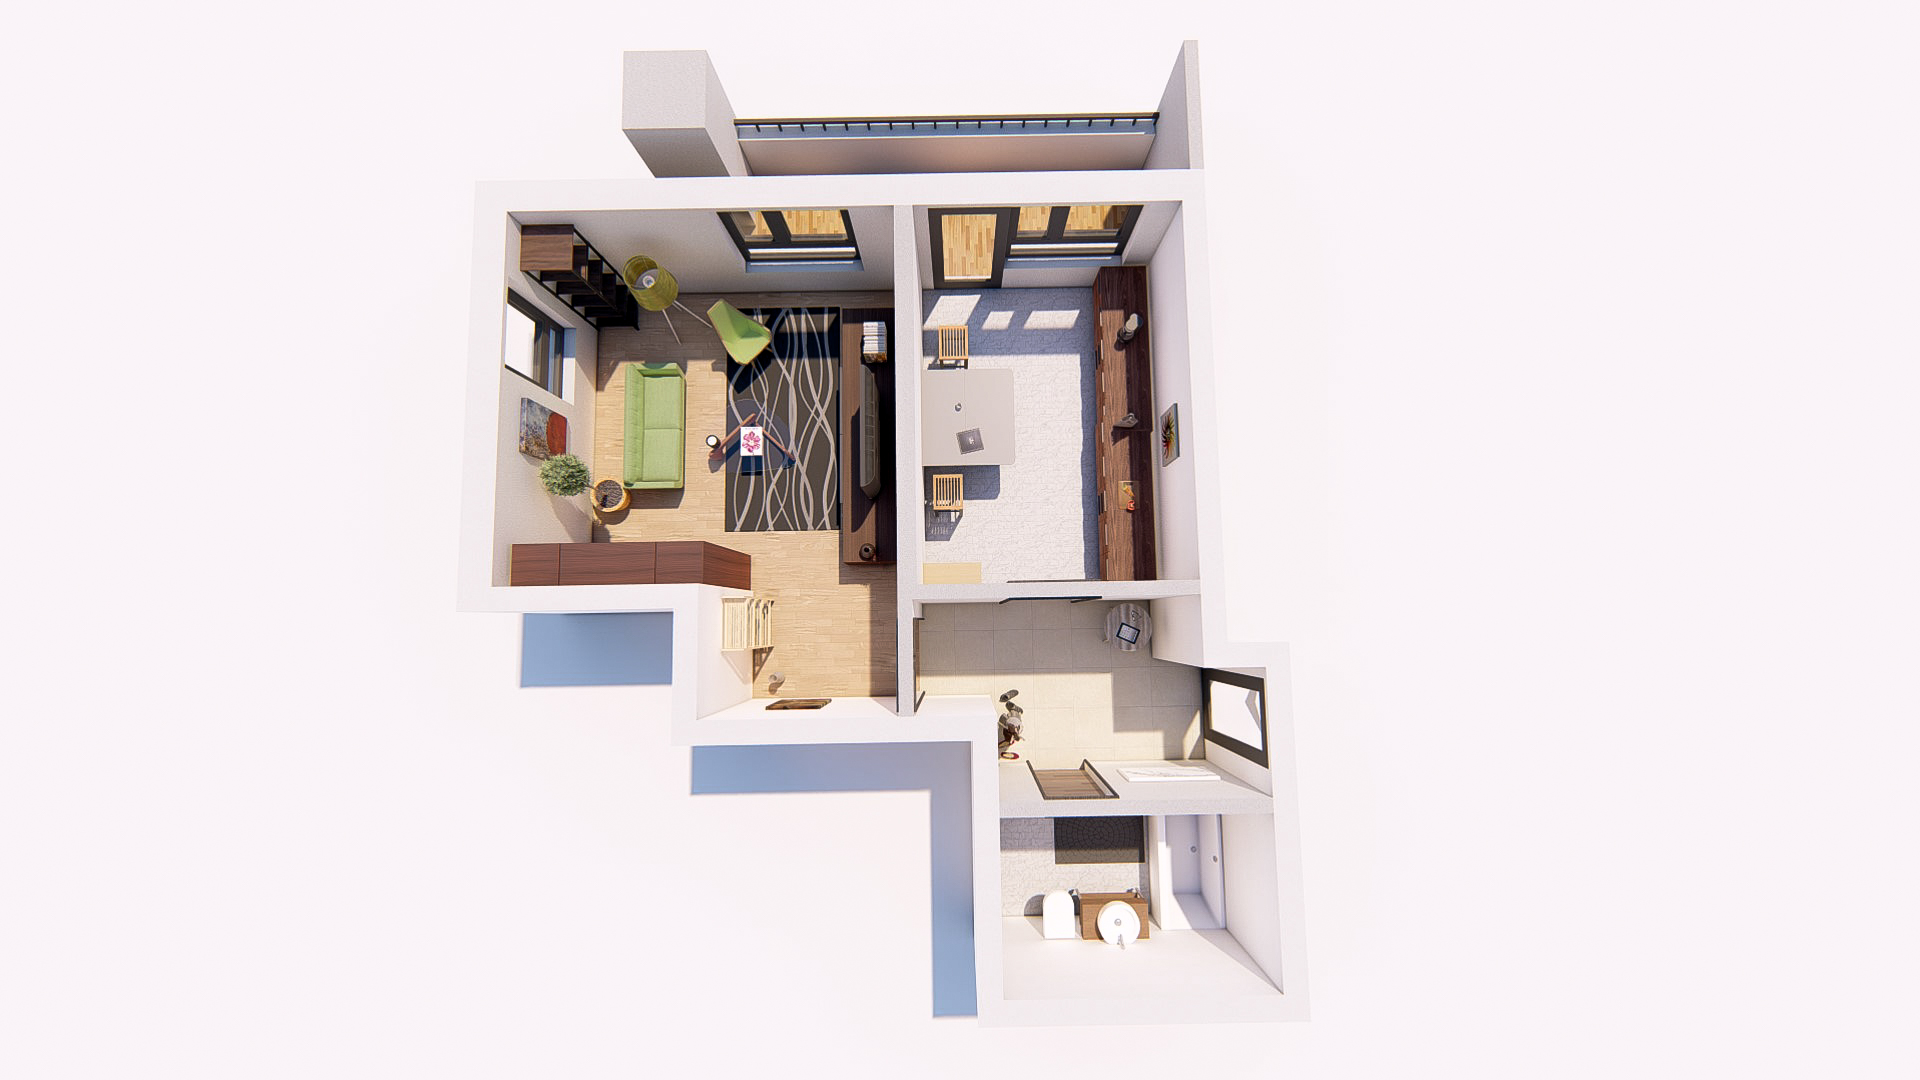 Romeo_Photo - 3